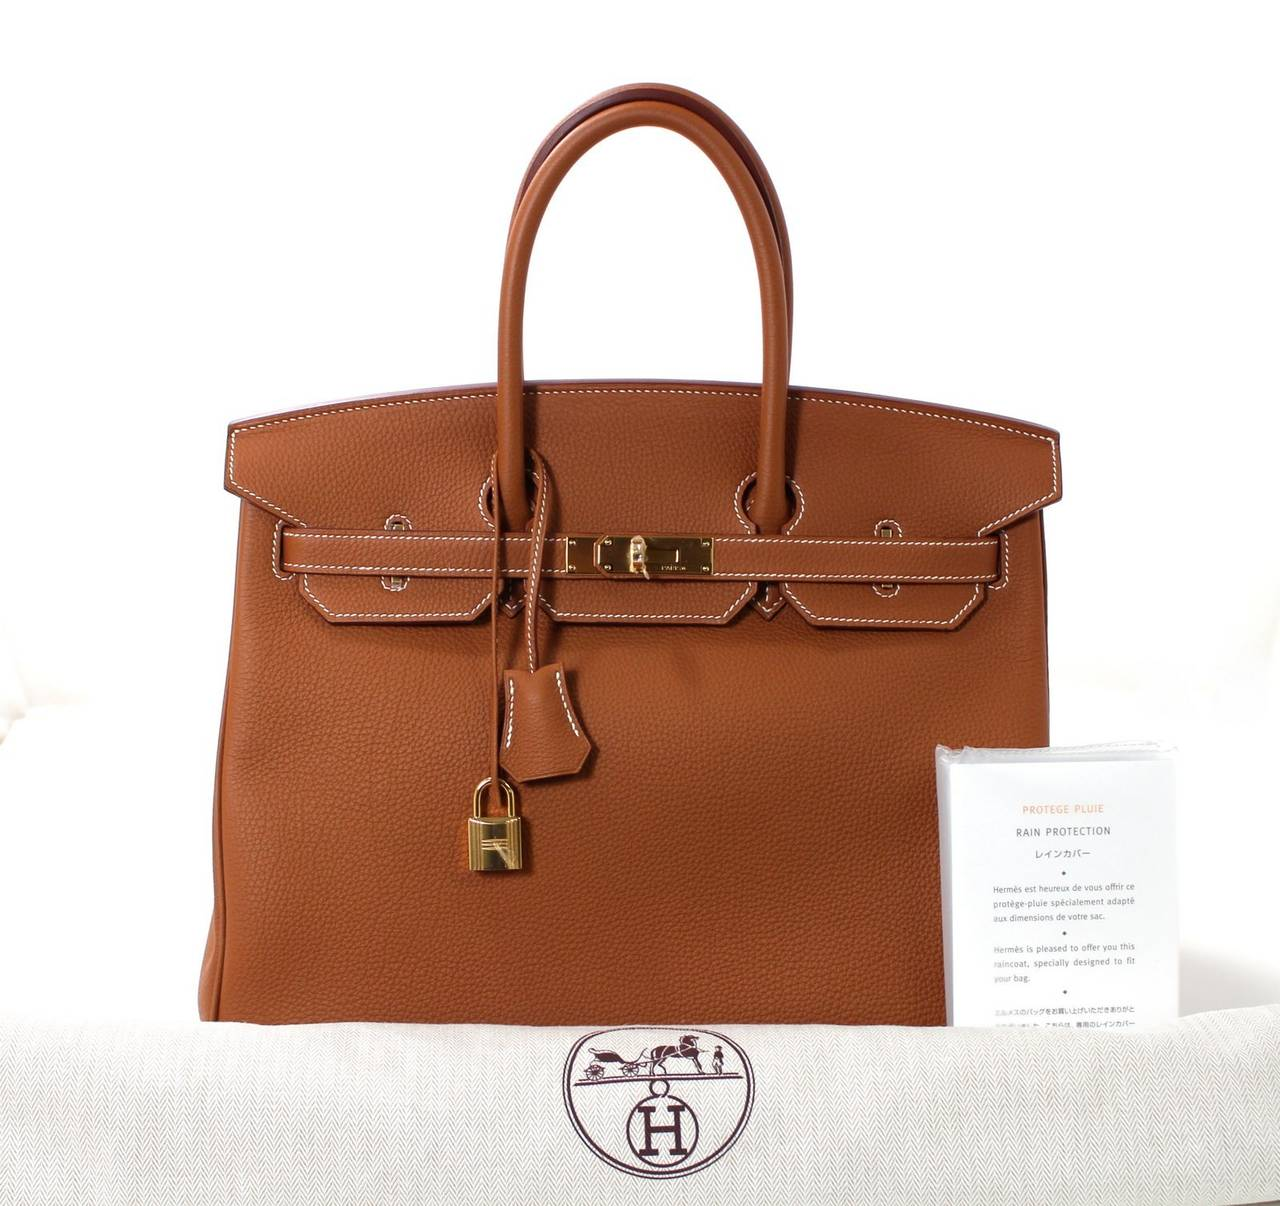 Hermes Classic Gold 35 cm Birkin Bag- Togo with GHW 10